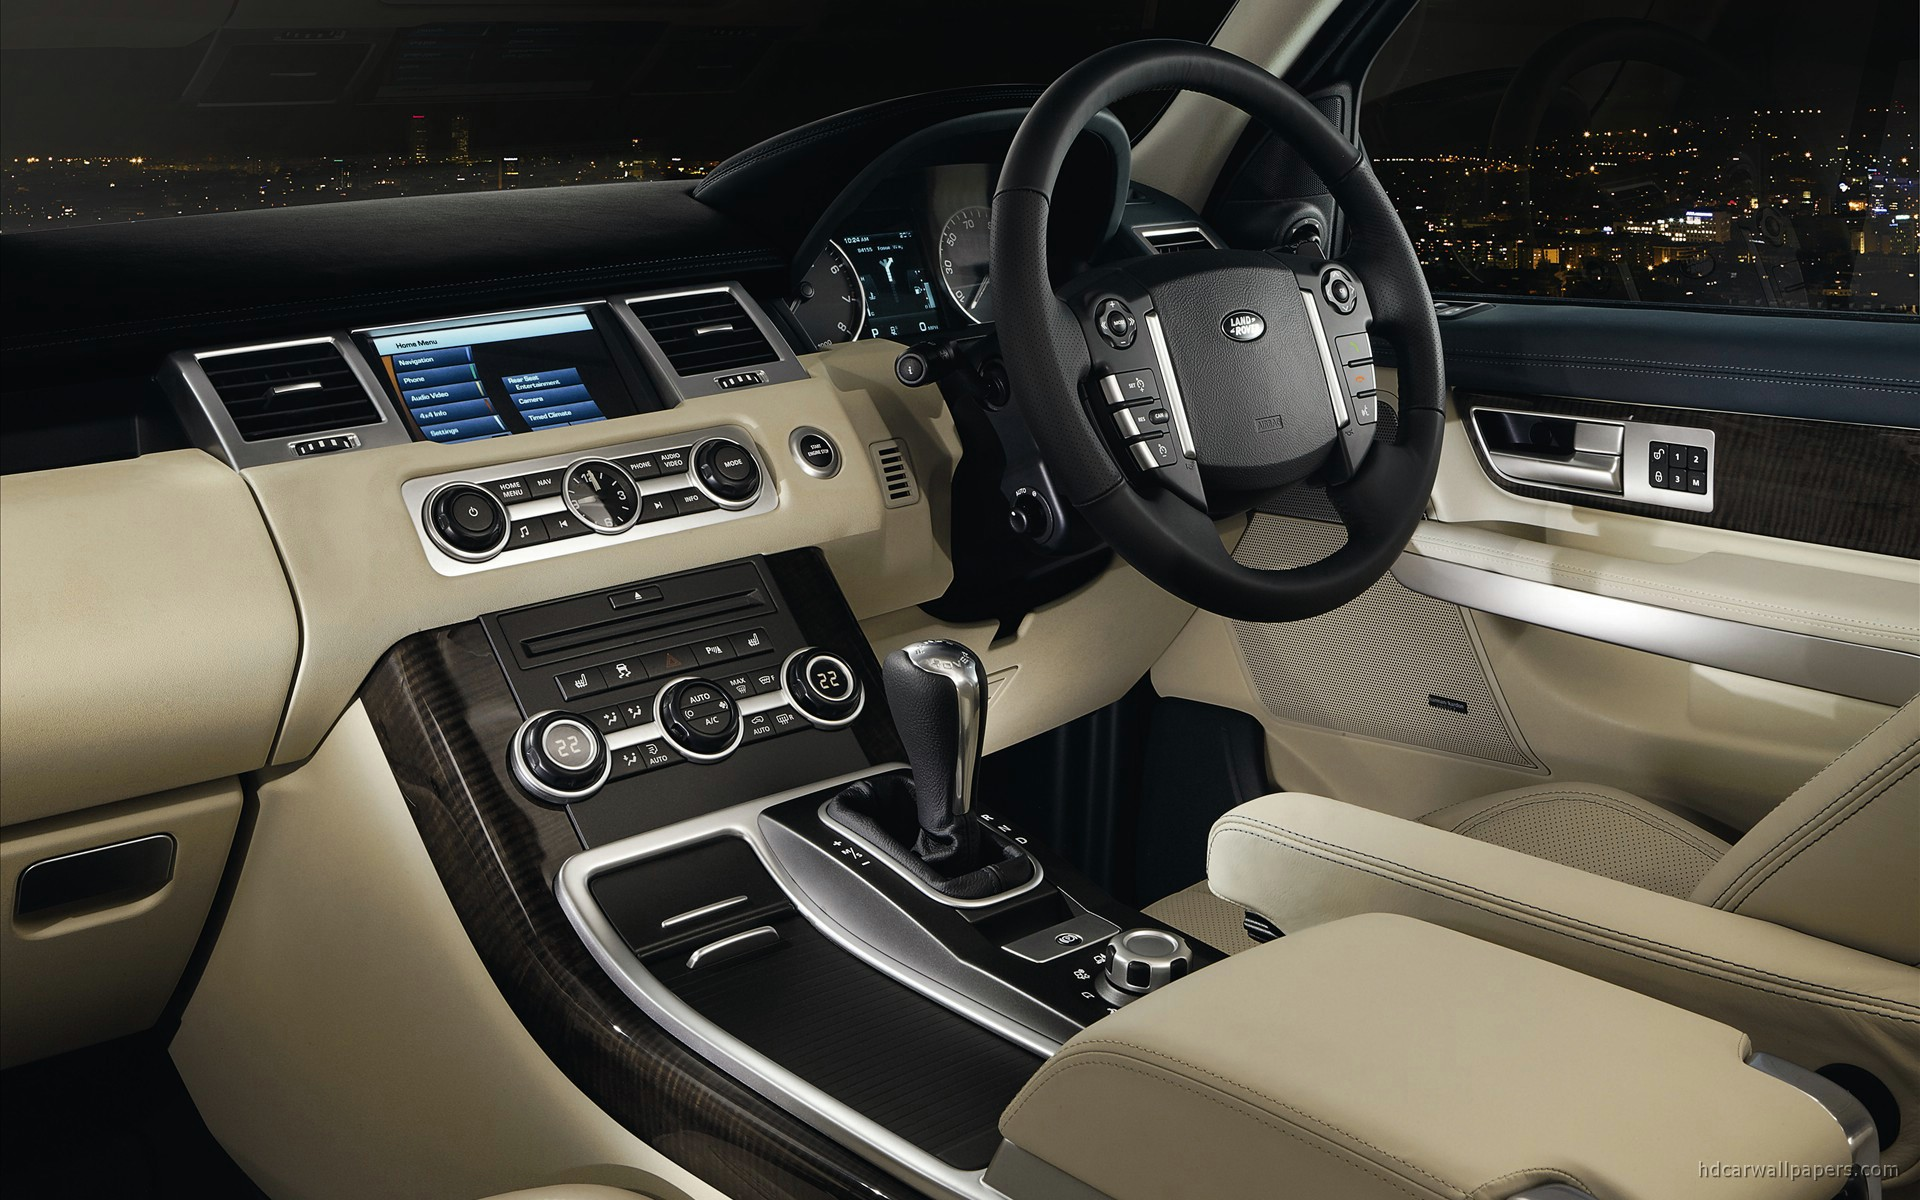 2010 Land Rover Range Rover Sport Interior Wallpaper Hd Car